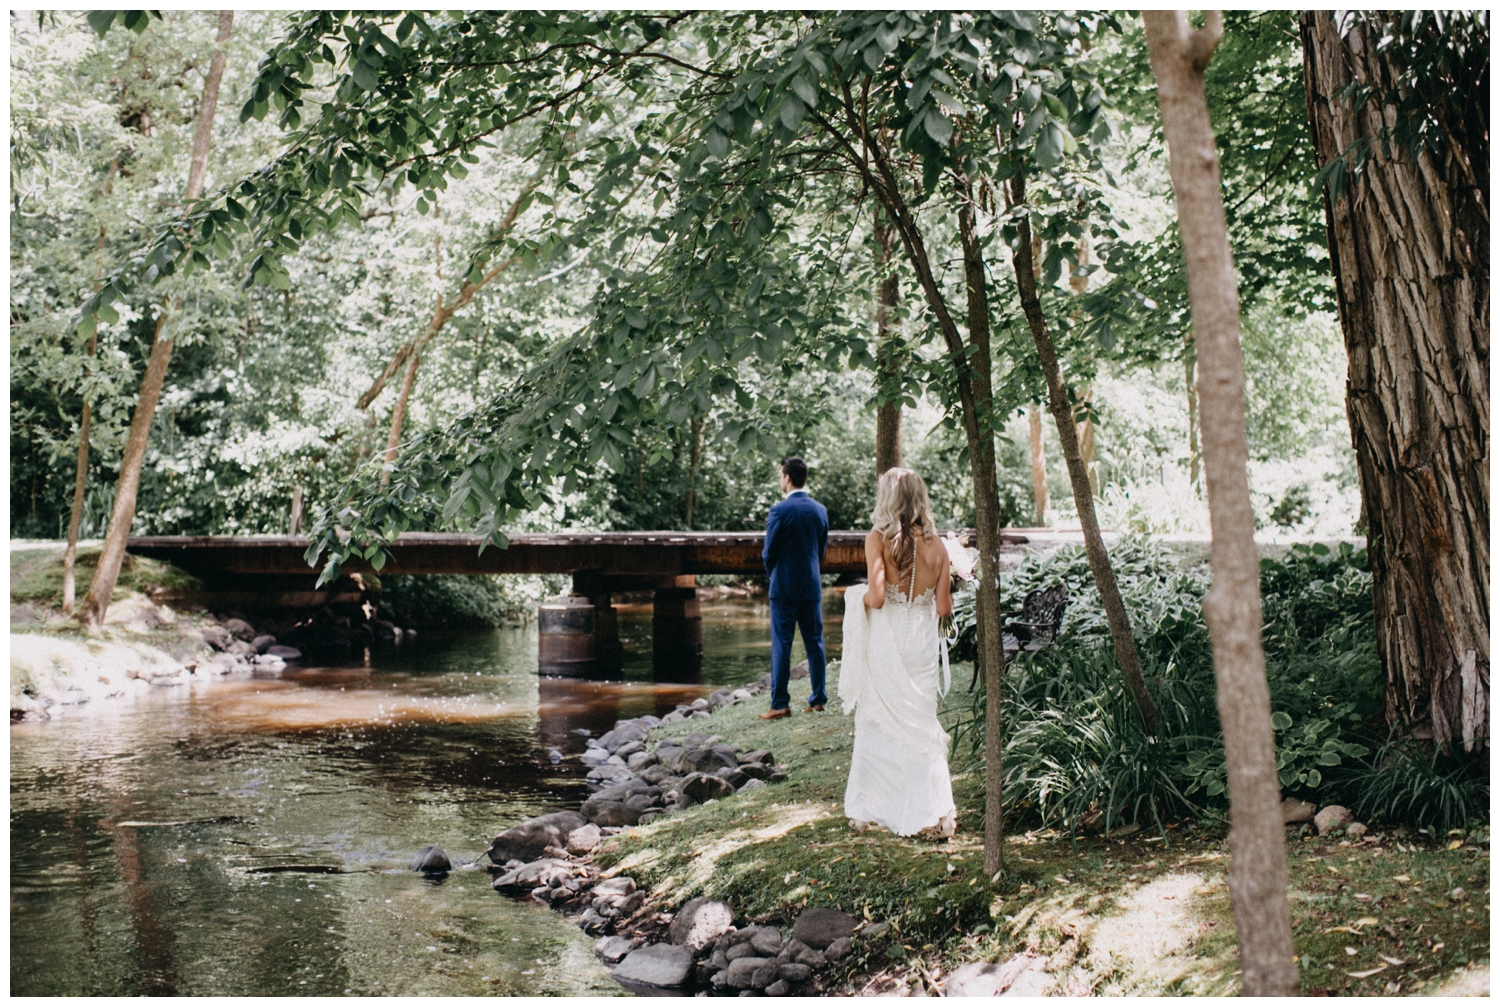 Bride and groom first look at Creekside Farm wedding photographed by Britt DeZeeuw